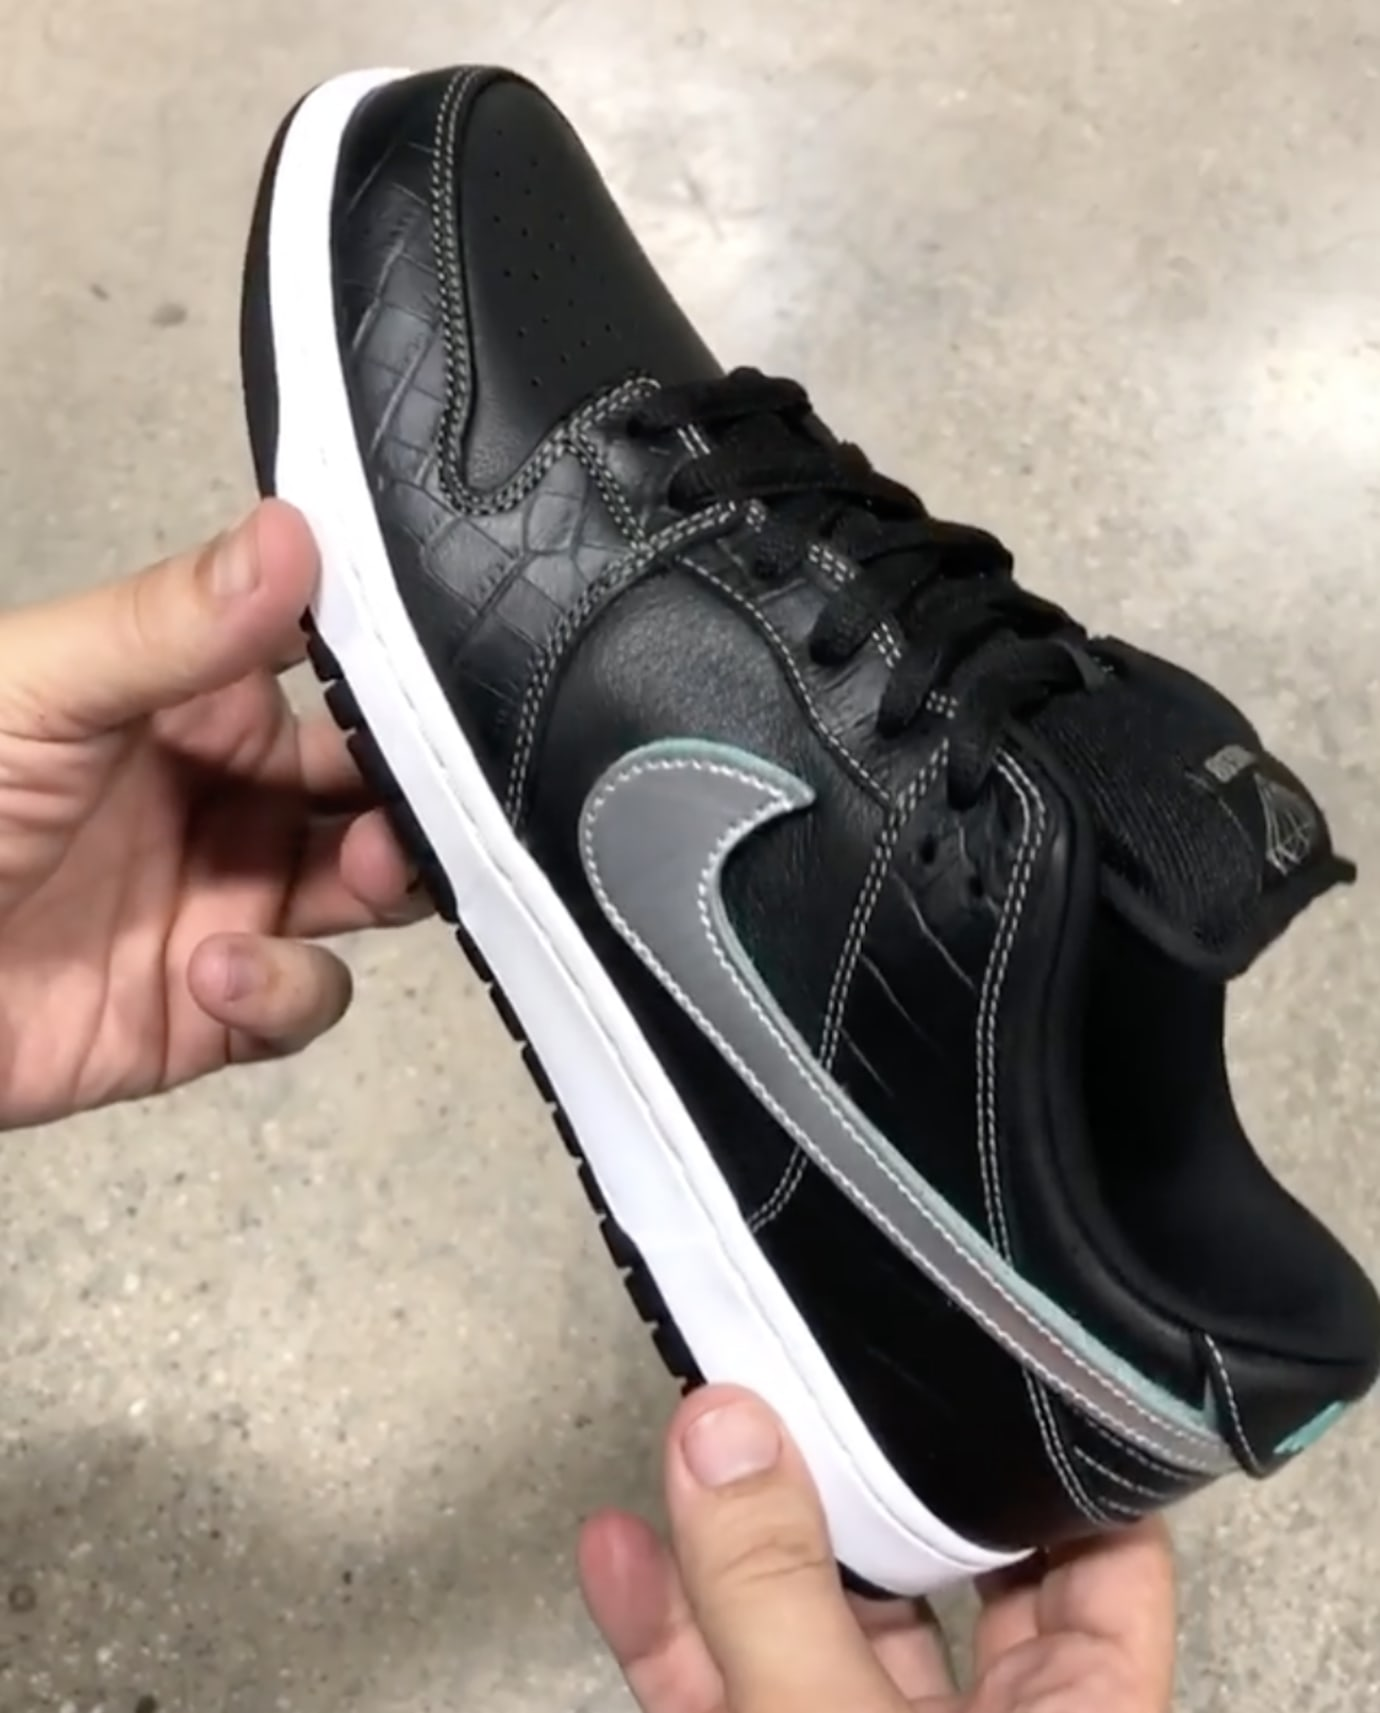 Diamond Supply Co. x Nike SB Dunk Low 'Black' 4